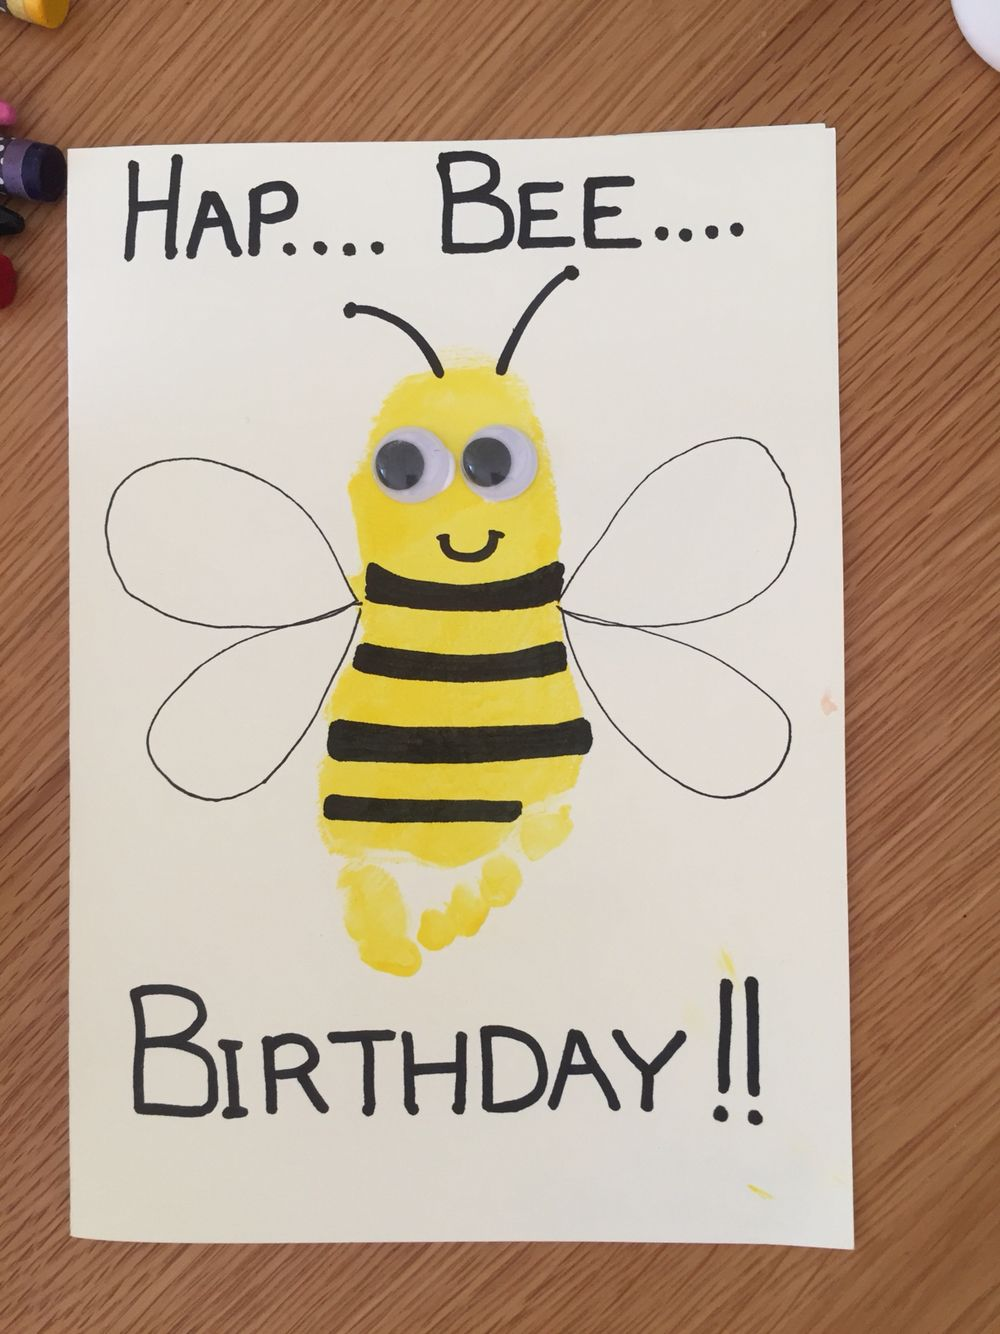 hap bee birthday card with toddler footprint and googley eyes